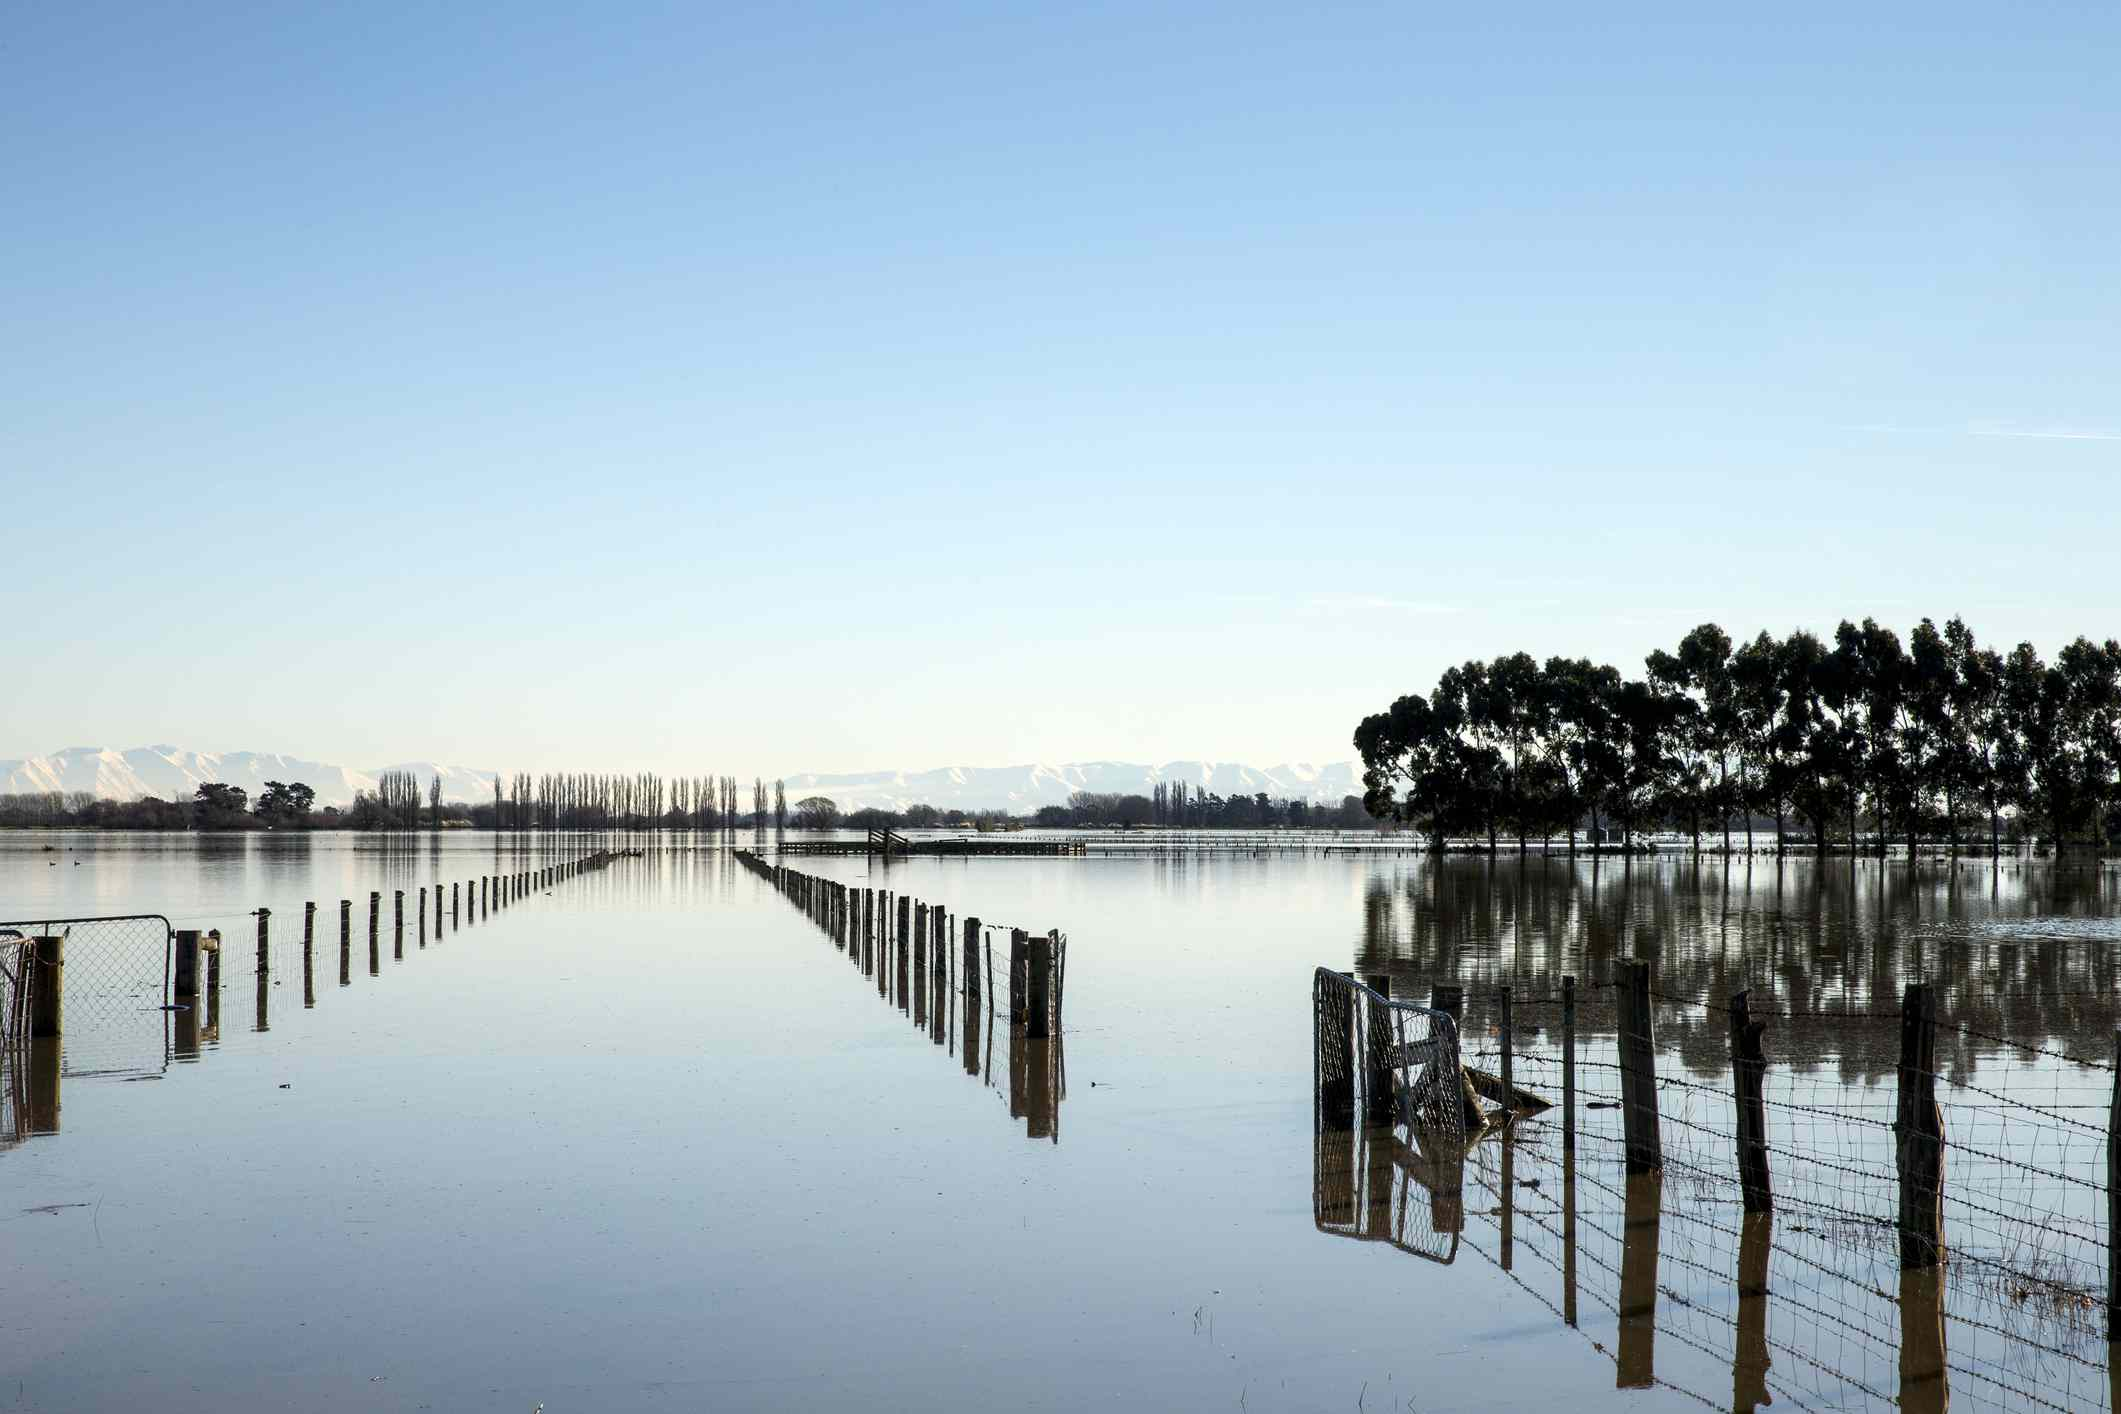 calm lake surface with protruding fence posts